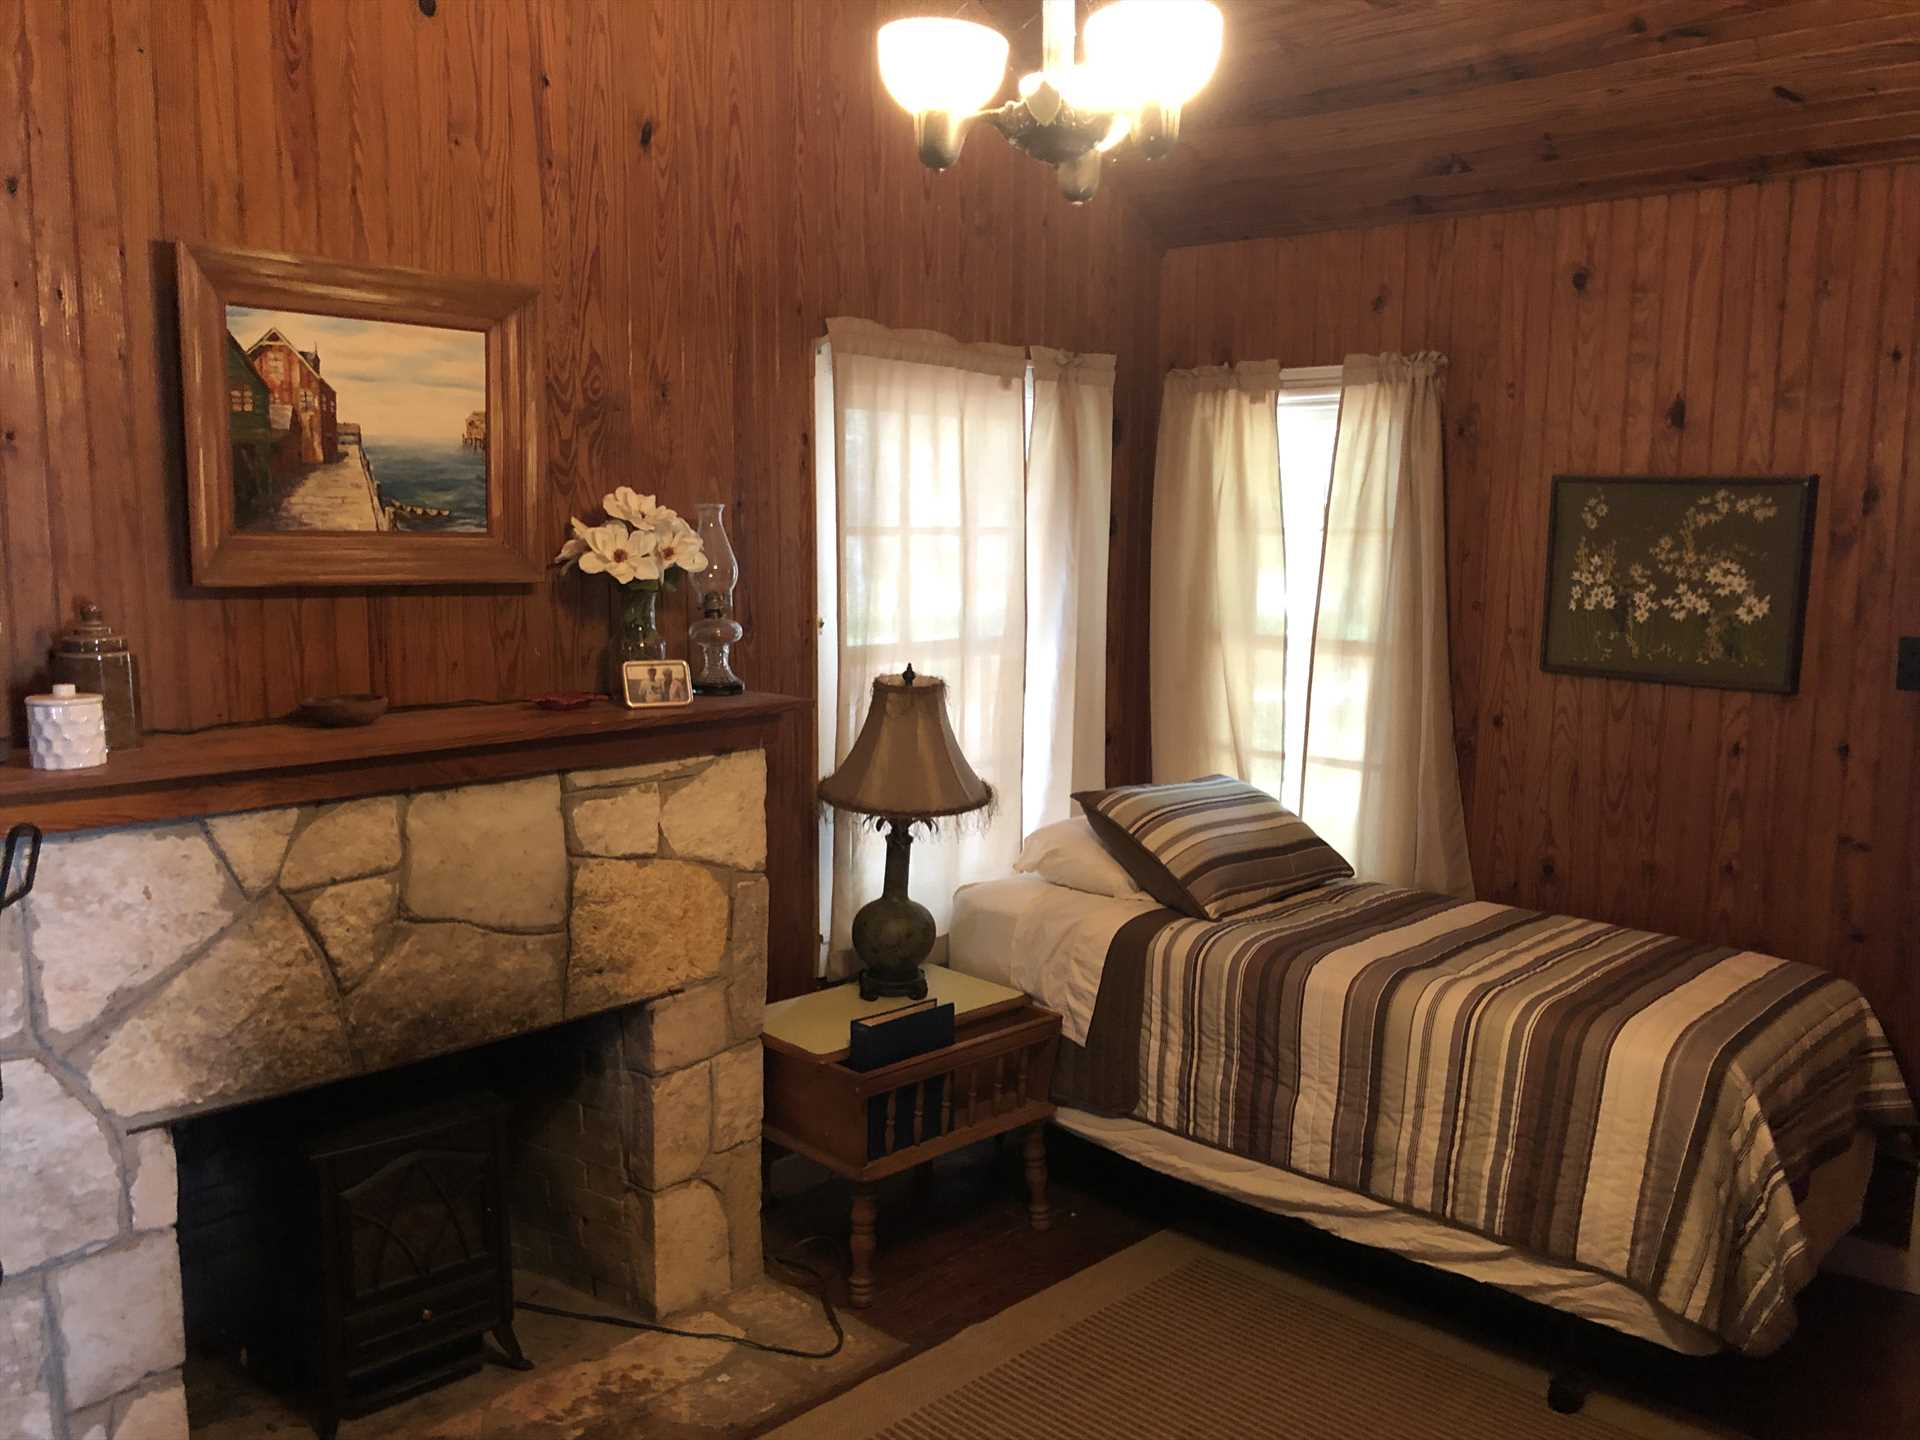 The twin bed in the den is close to the electric fireplace-a great place to warm your toes on chilly nights!